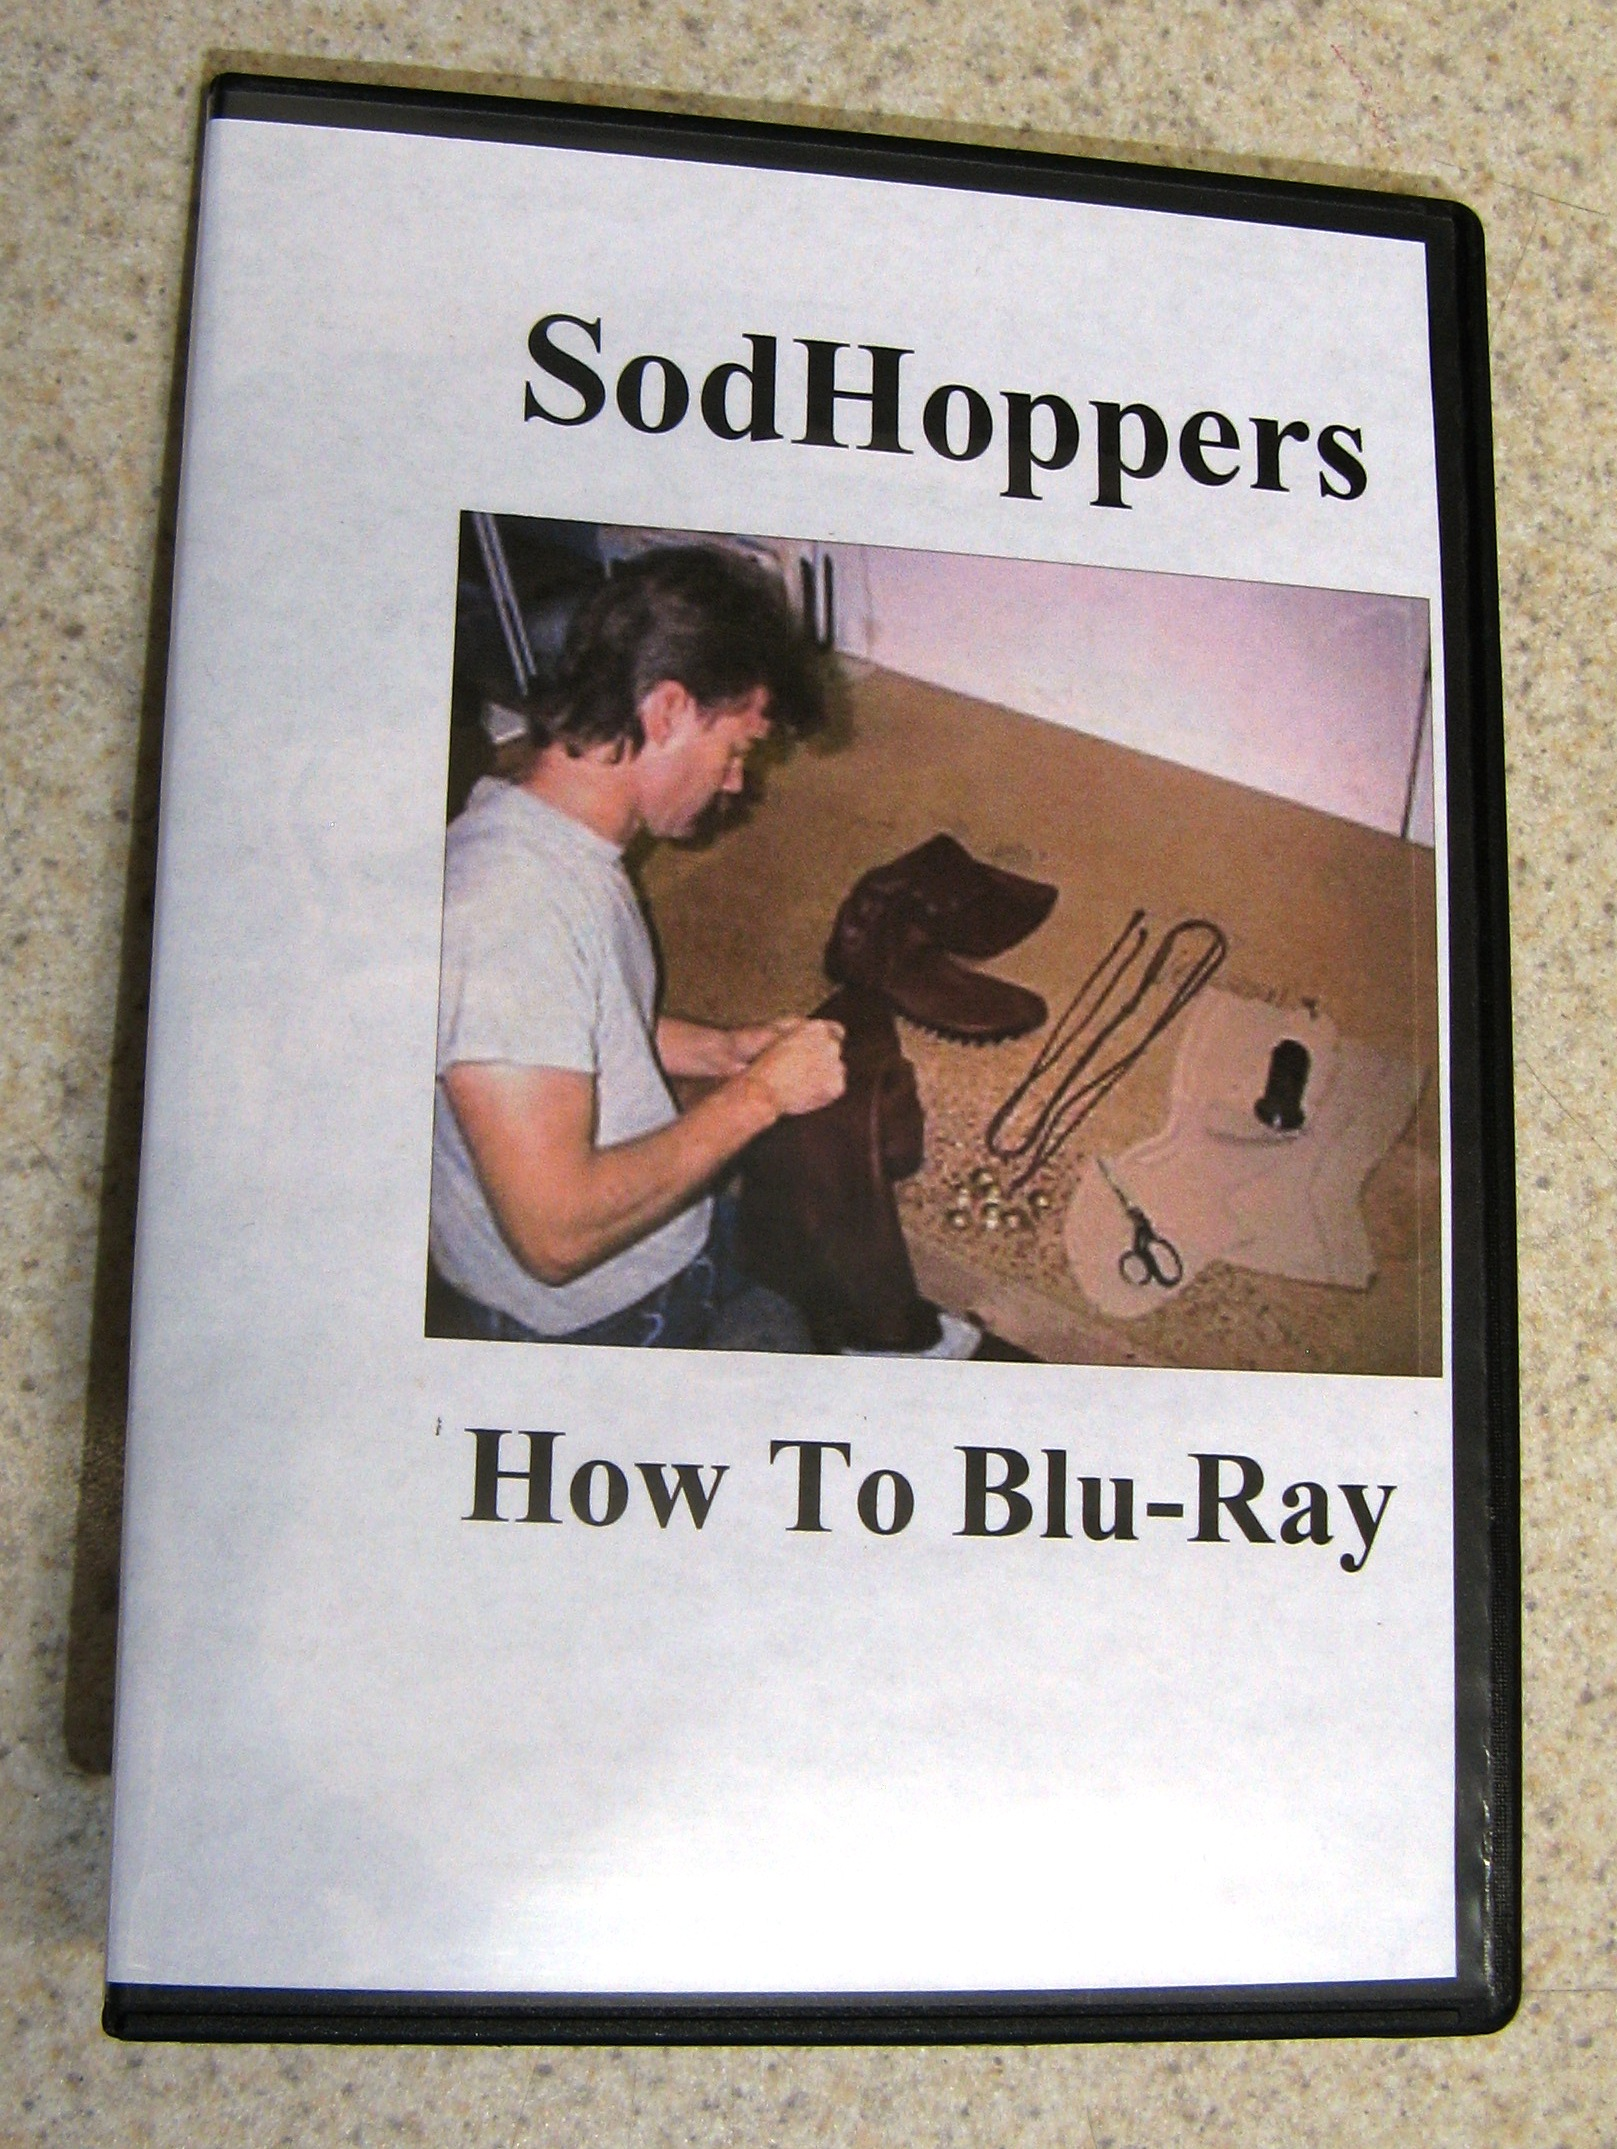 case sodhoppers how to make moccasins blu-ray